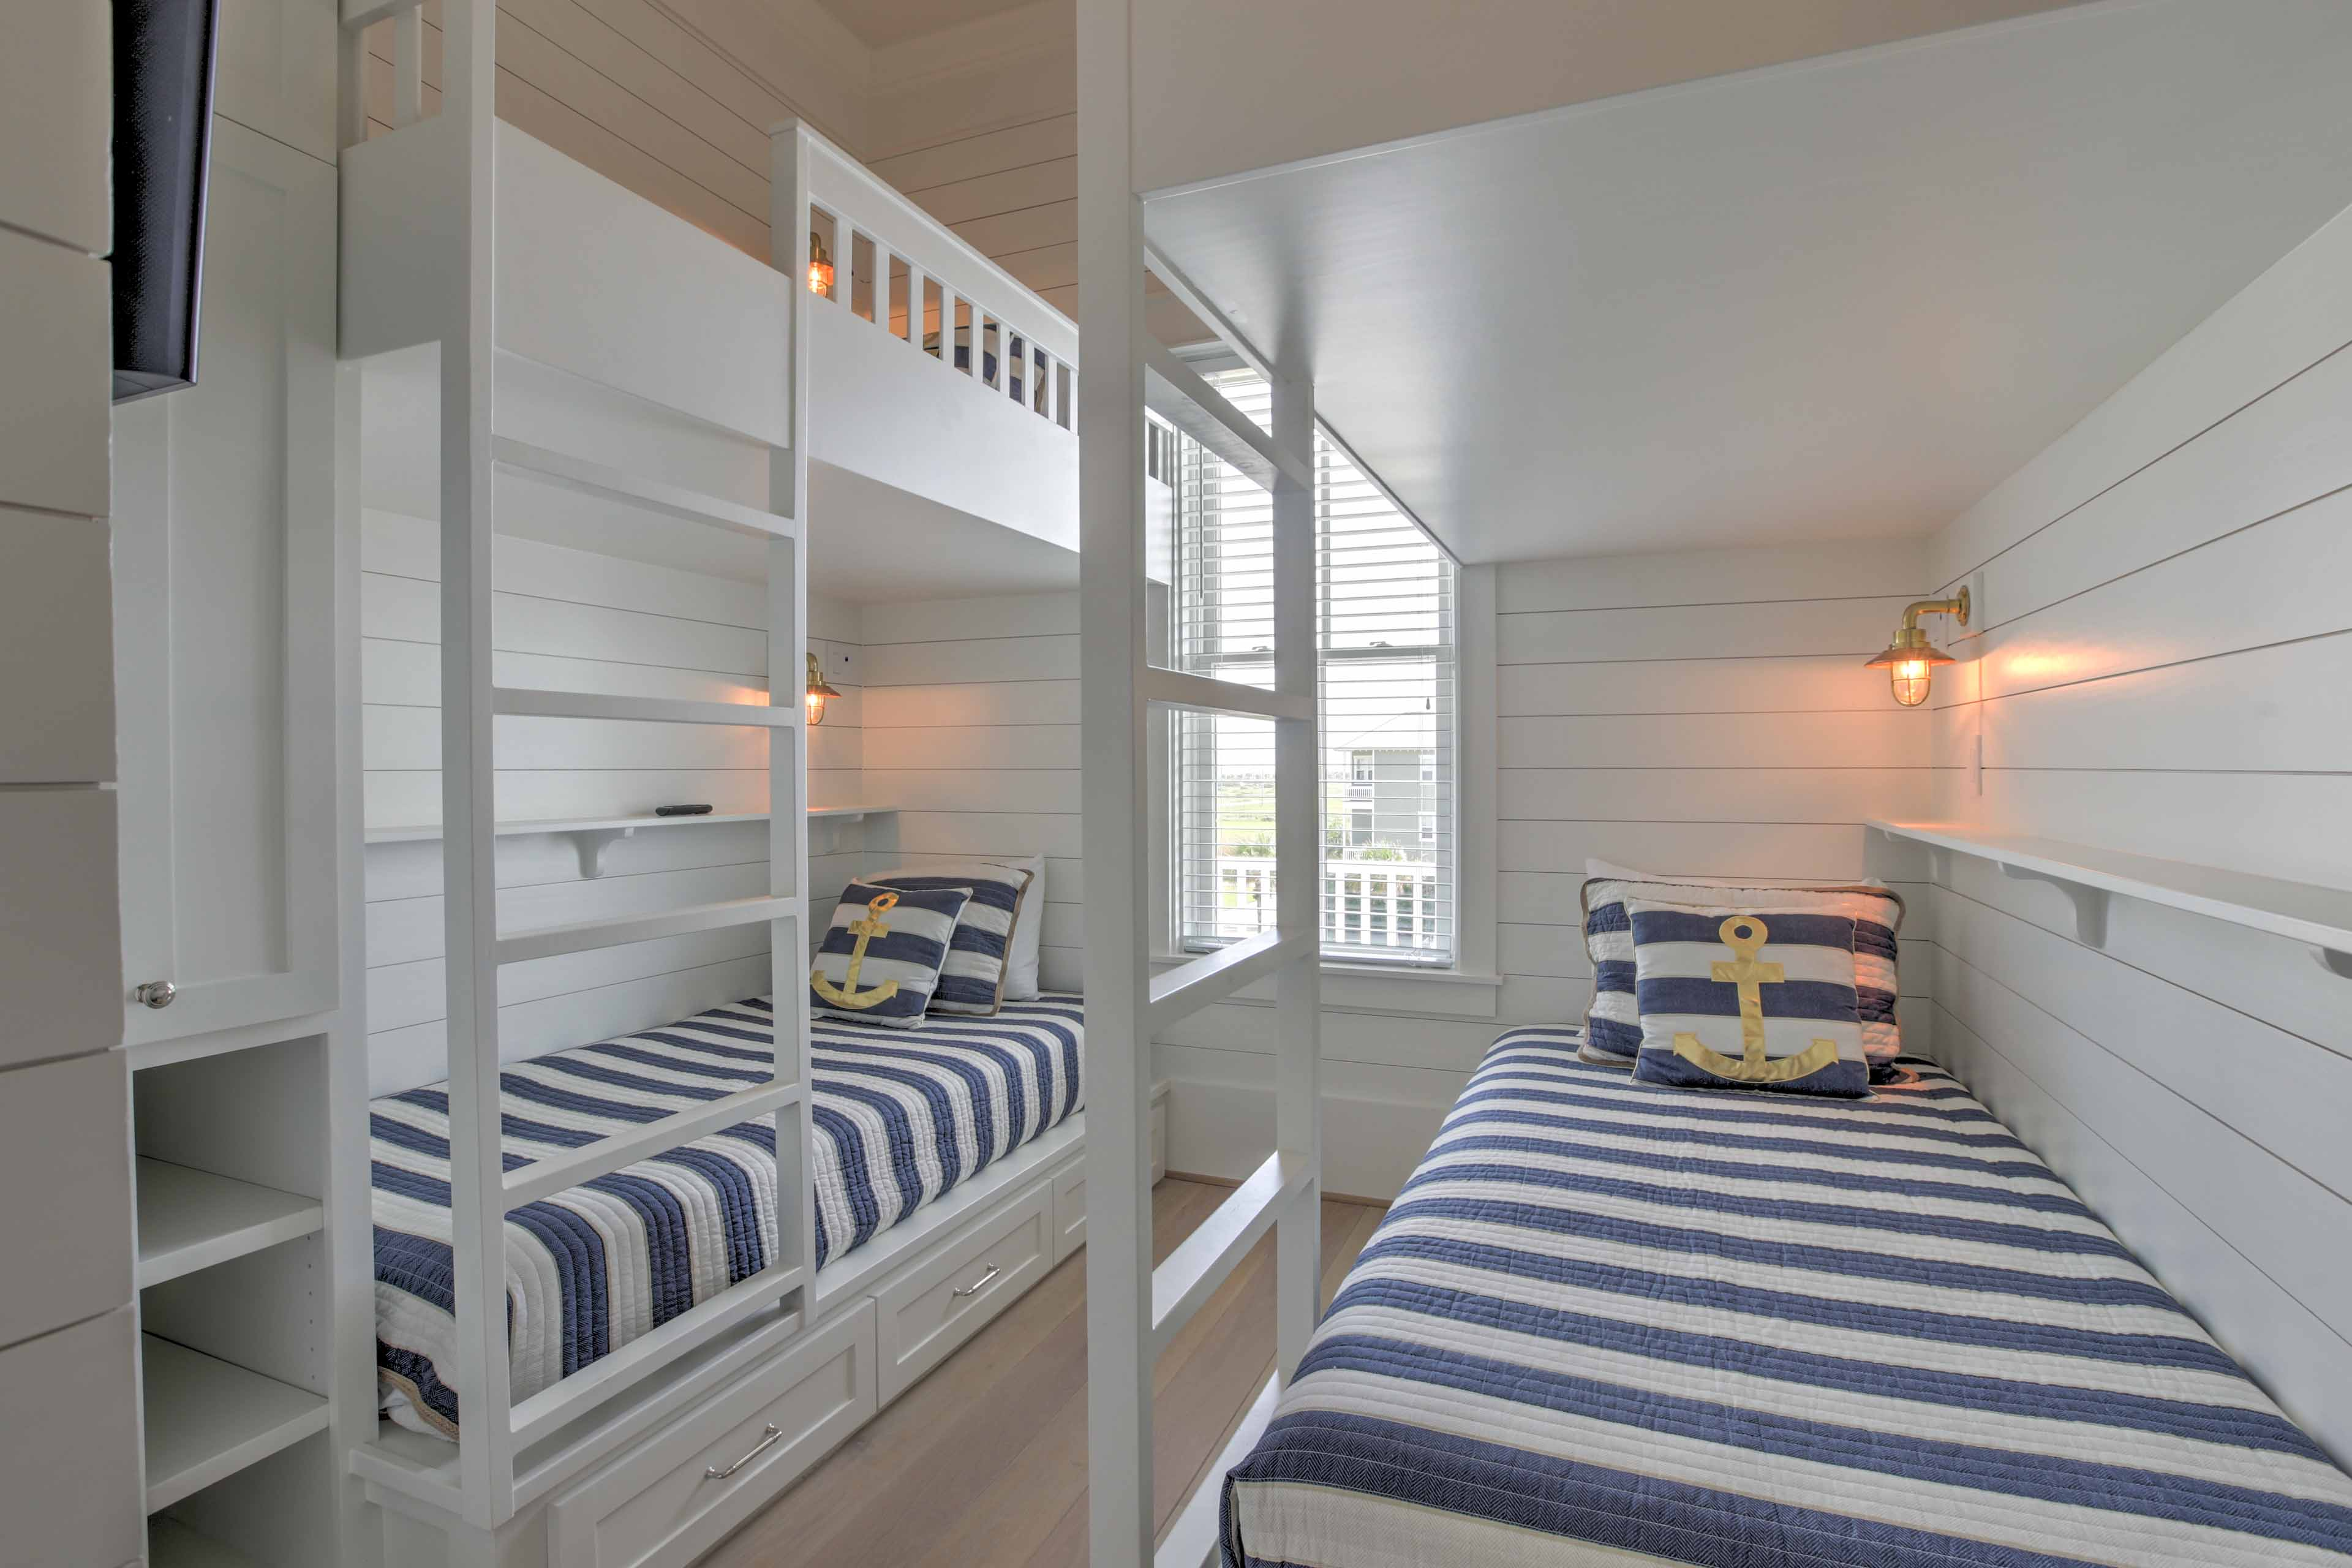 The kids will love the third bedroom with a bunk bed.